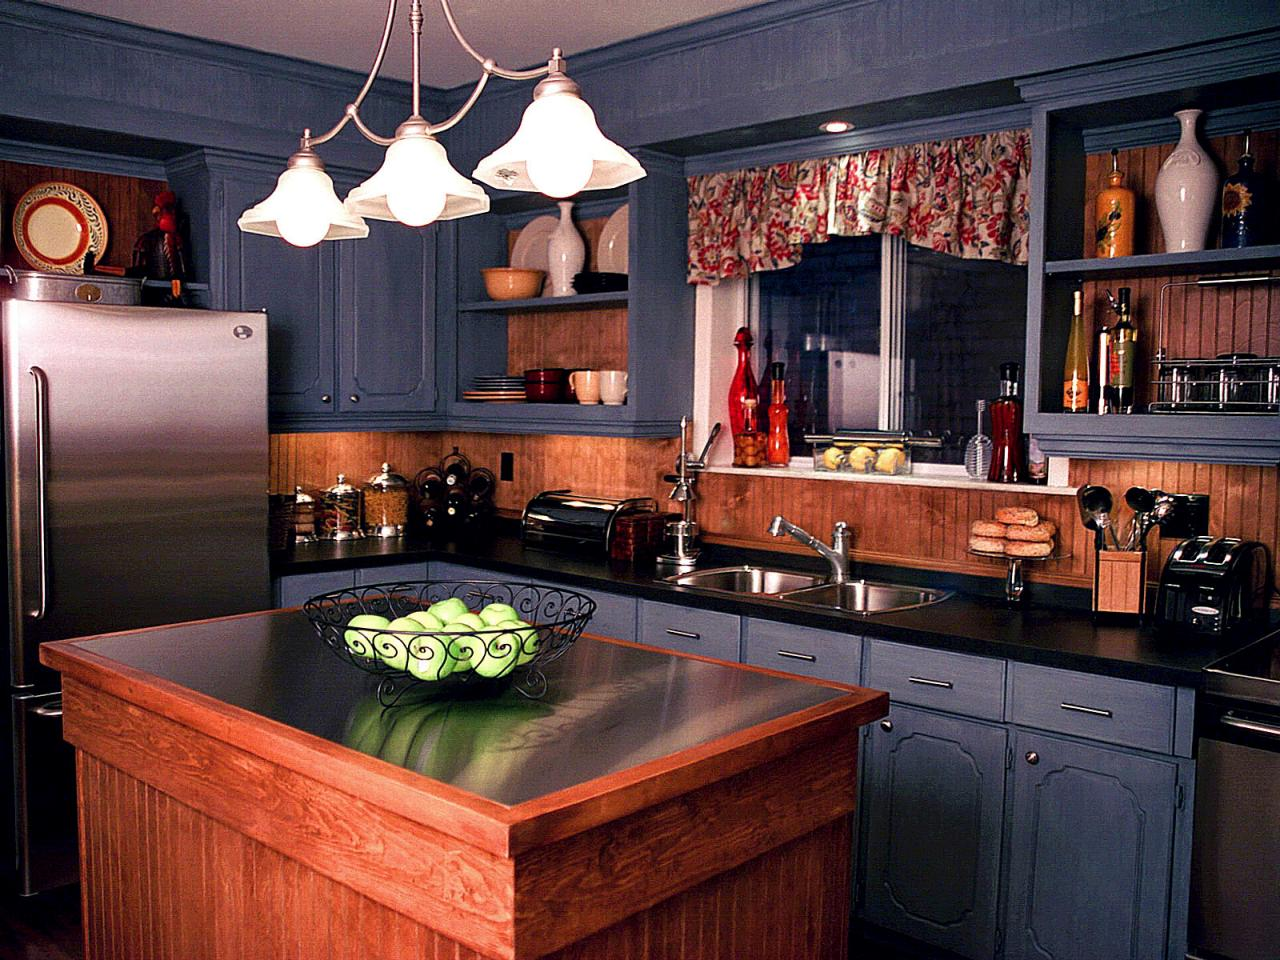 island-kitchen-lay-out-3